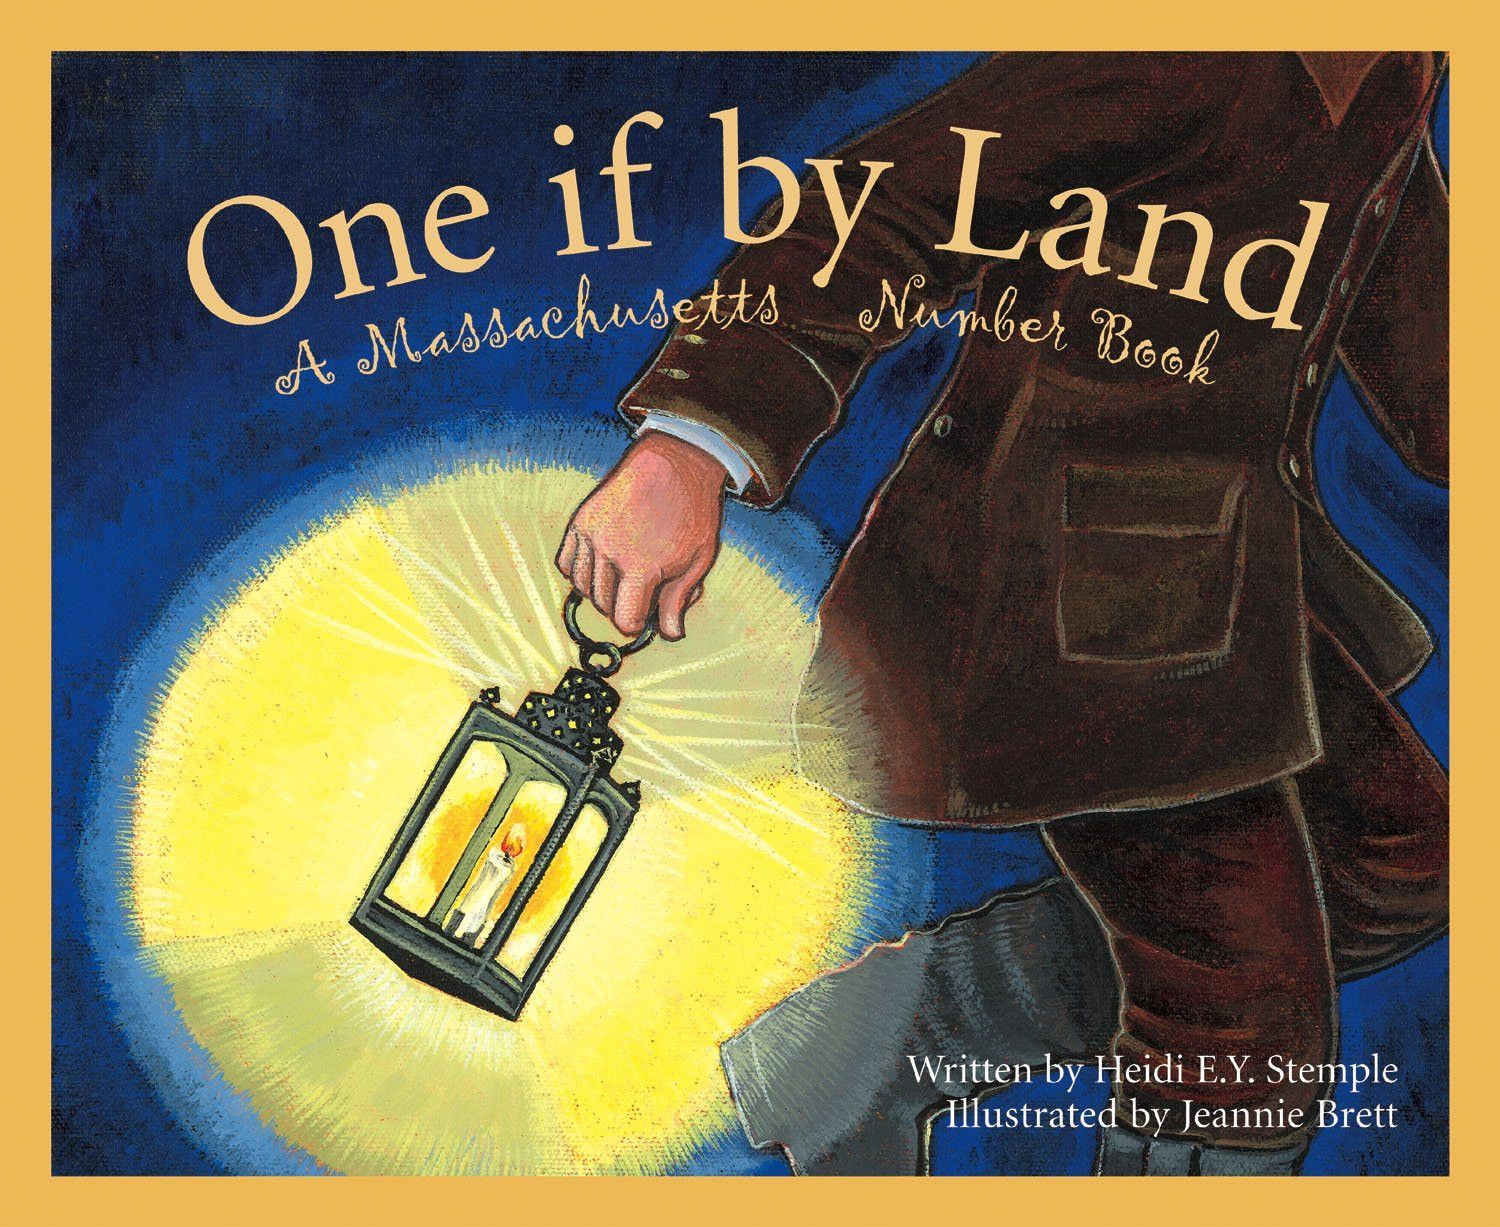 One If By Land A Massachusetts Number Book Books